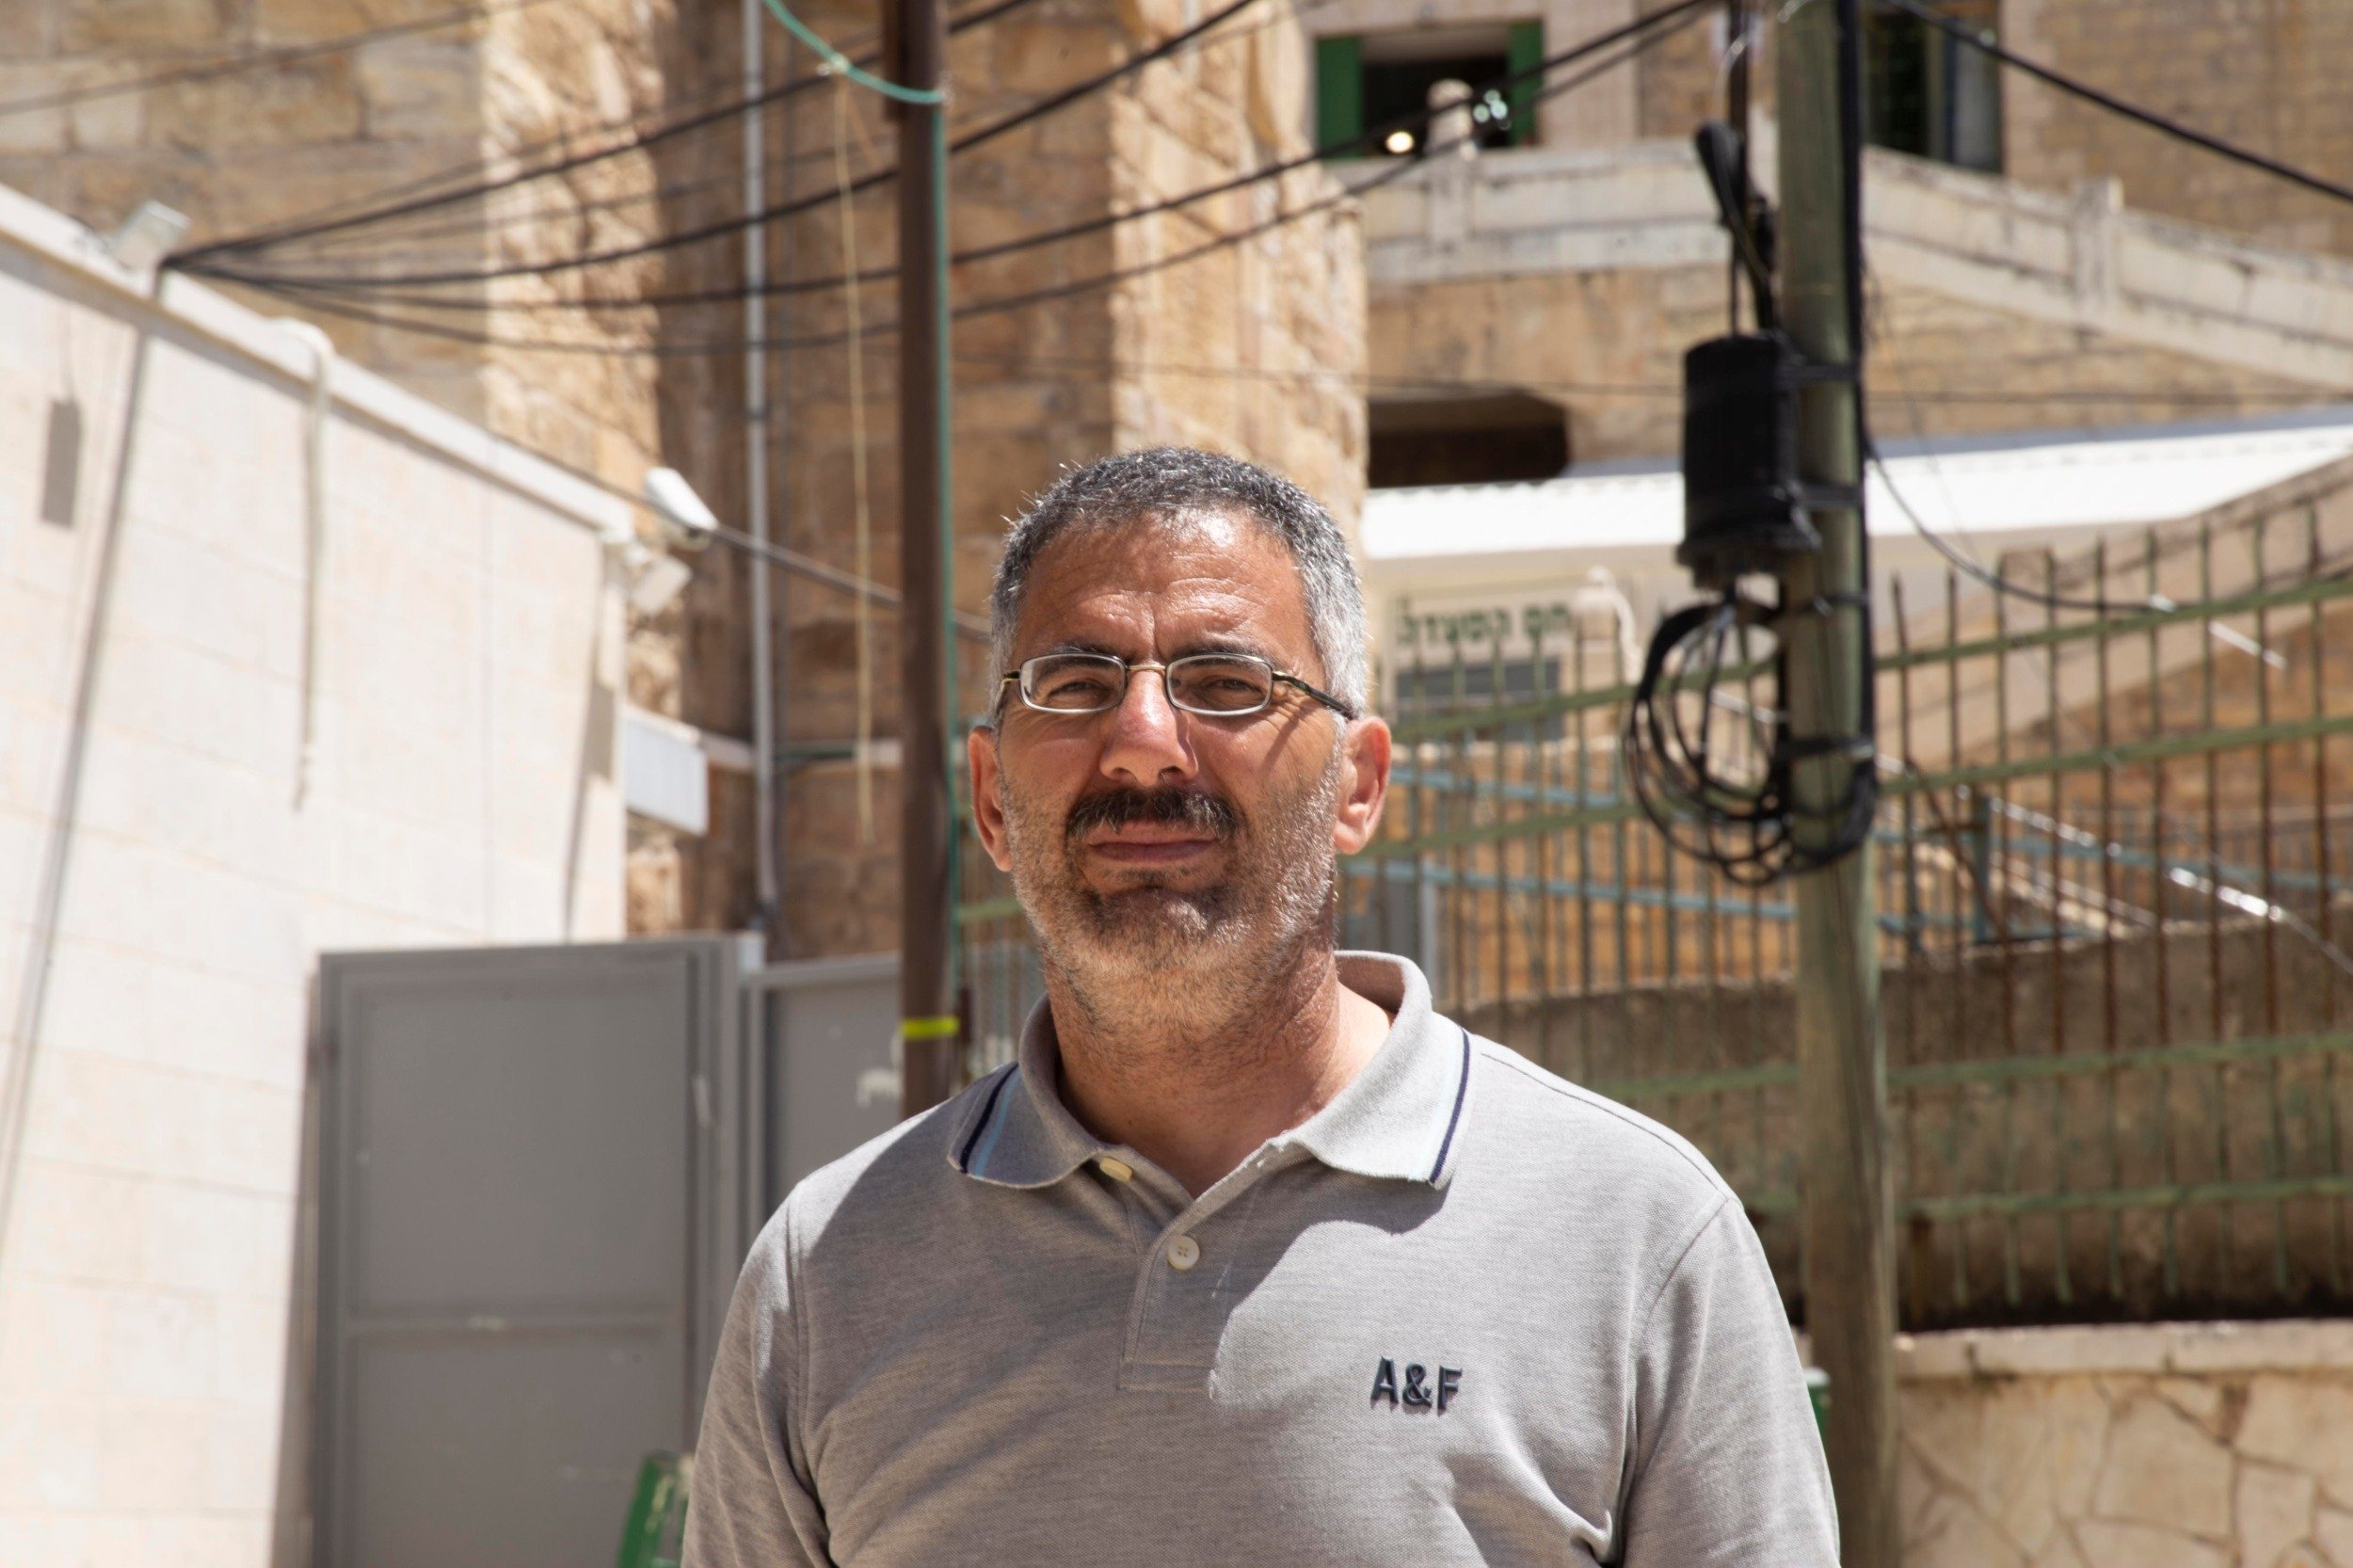 """For activist Aref Jaber, the Ibrahimi mosque case is """"not about religion, it's not about Muslims versus Jews. At the end of the day, this boils down to a political issue."""" (MEE/Akram al-Waraa)"""